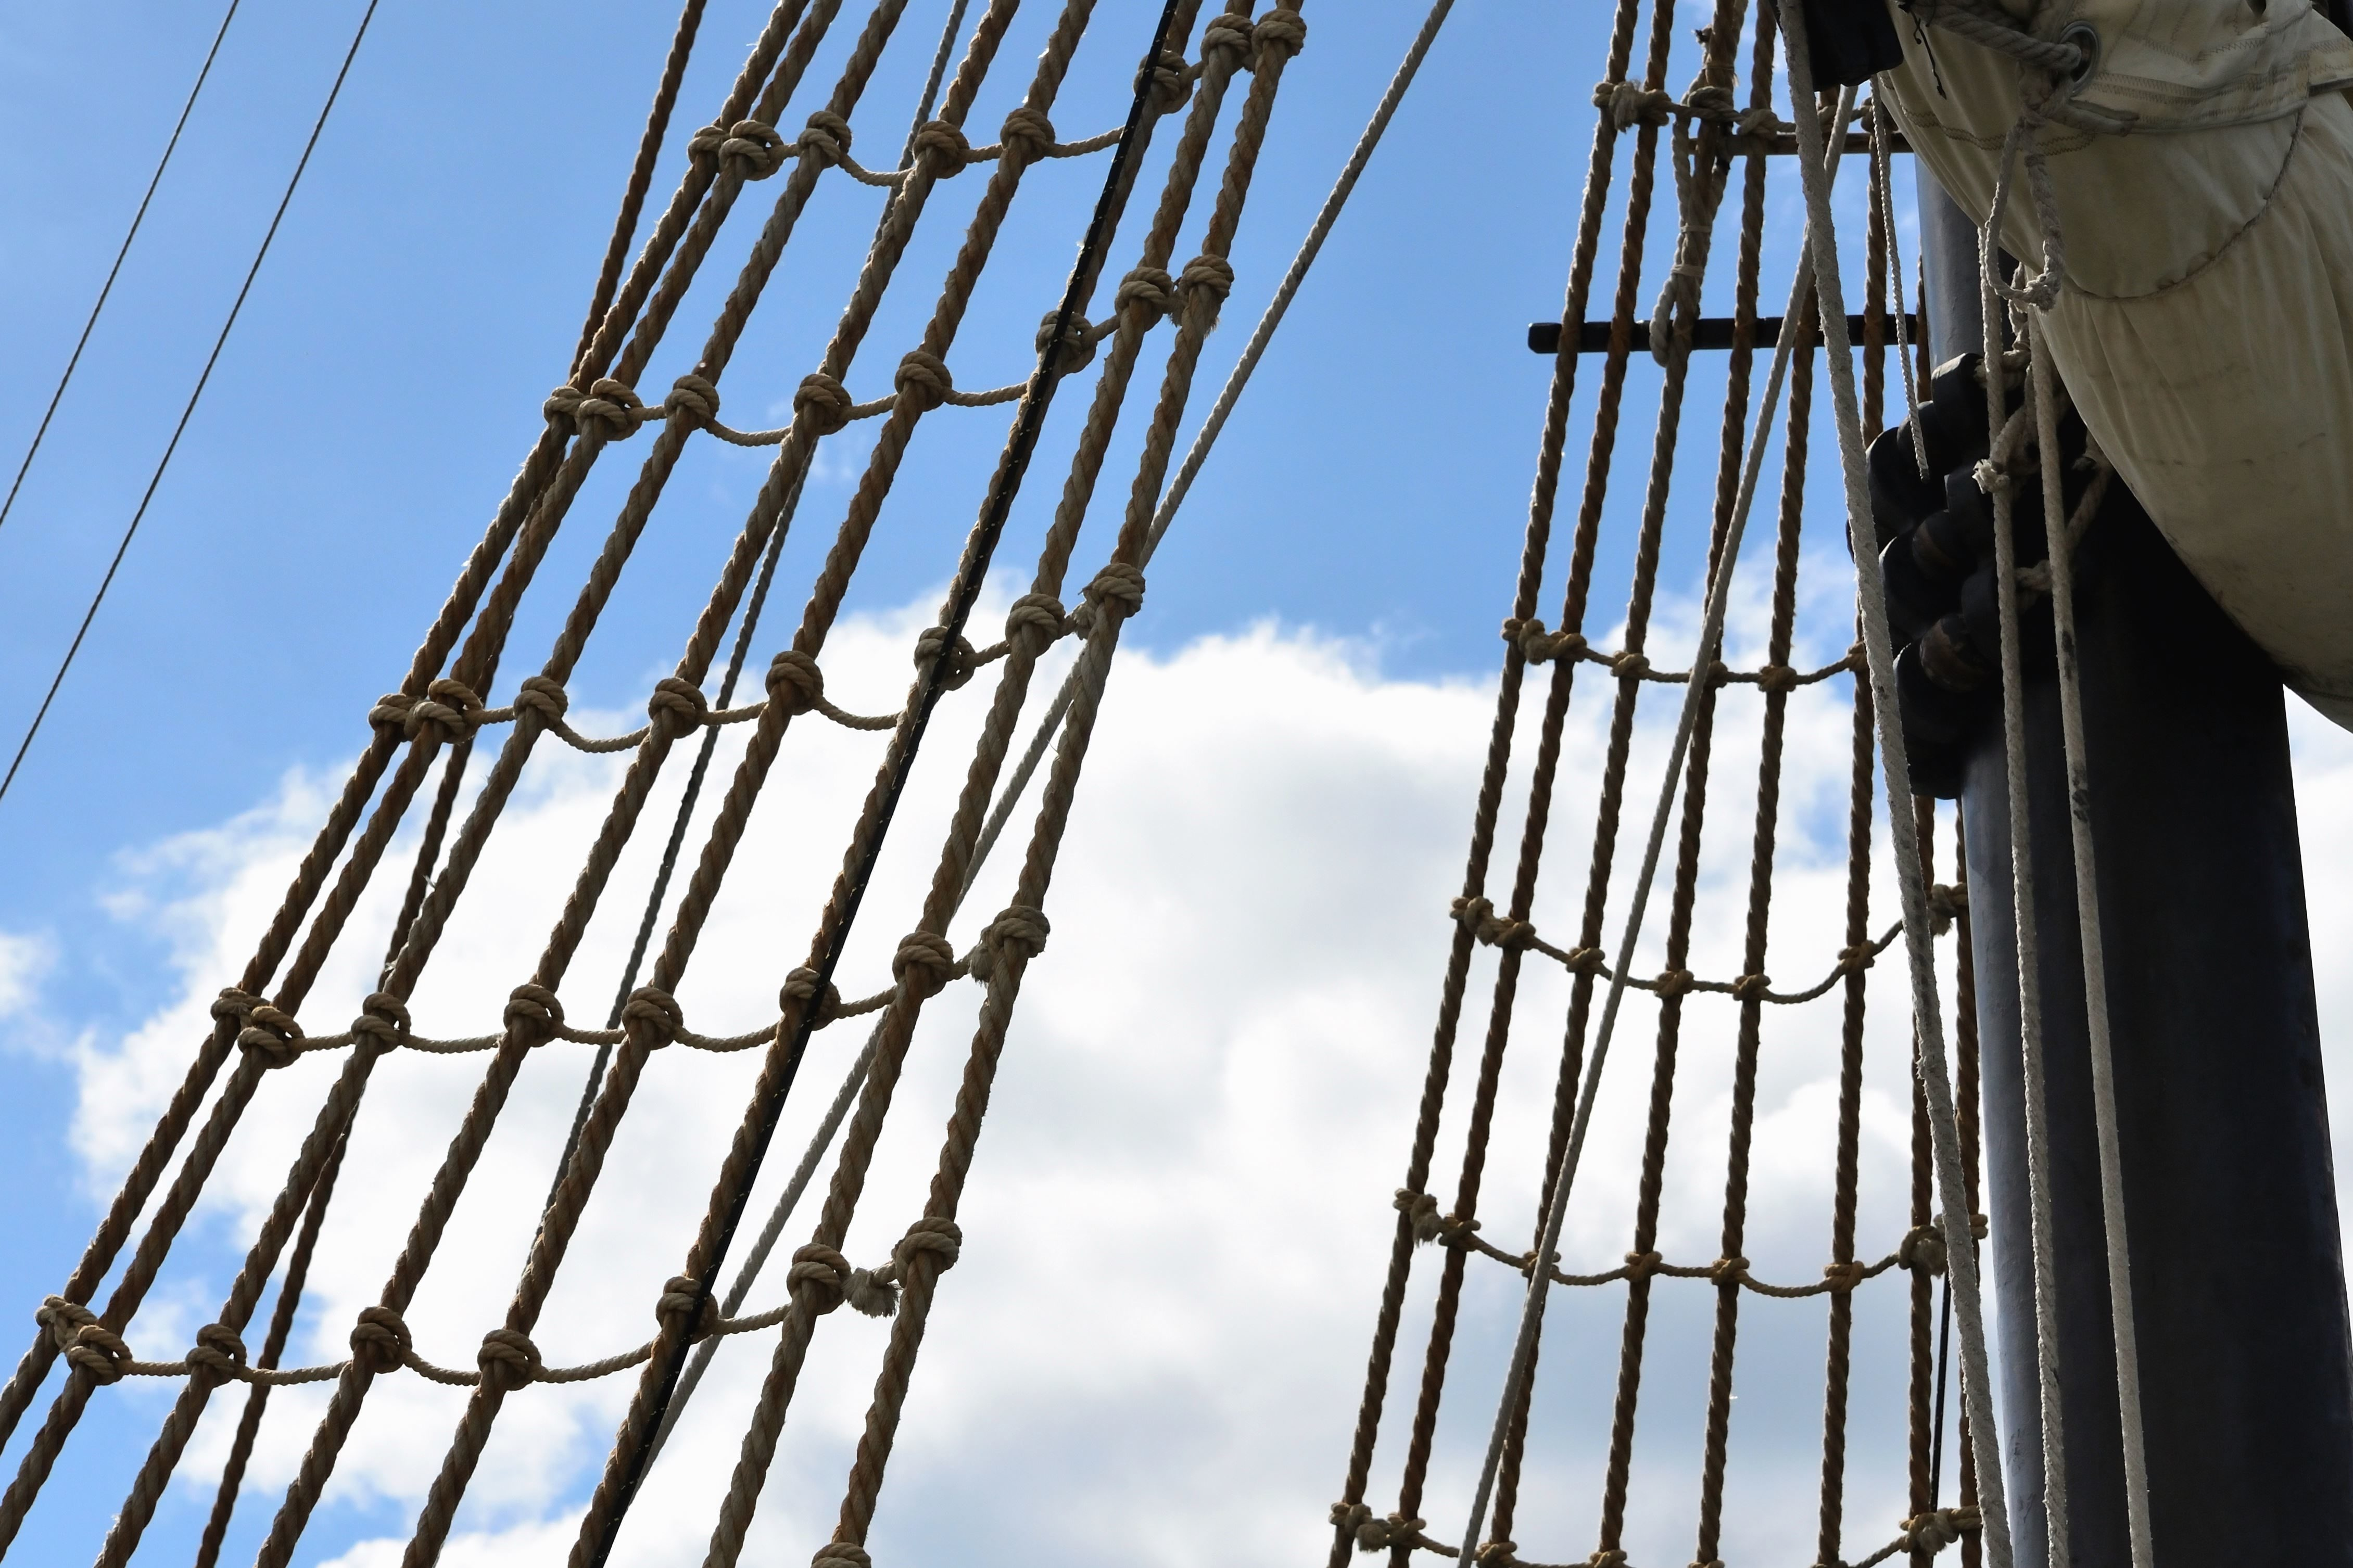 Free picture: rope, ladders, climbing, mast, boat, sky, sea, sail for Rope Ladder Ship  76uhy